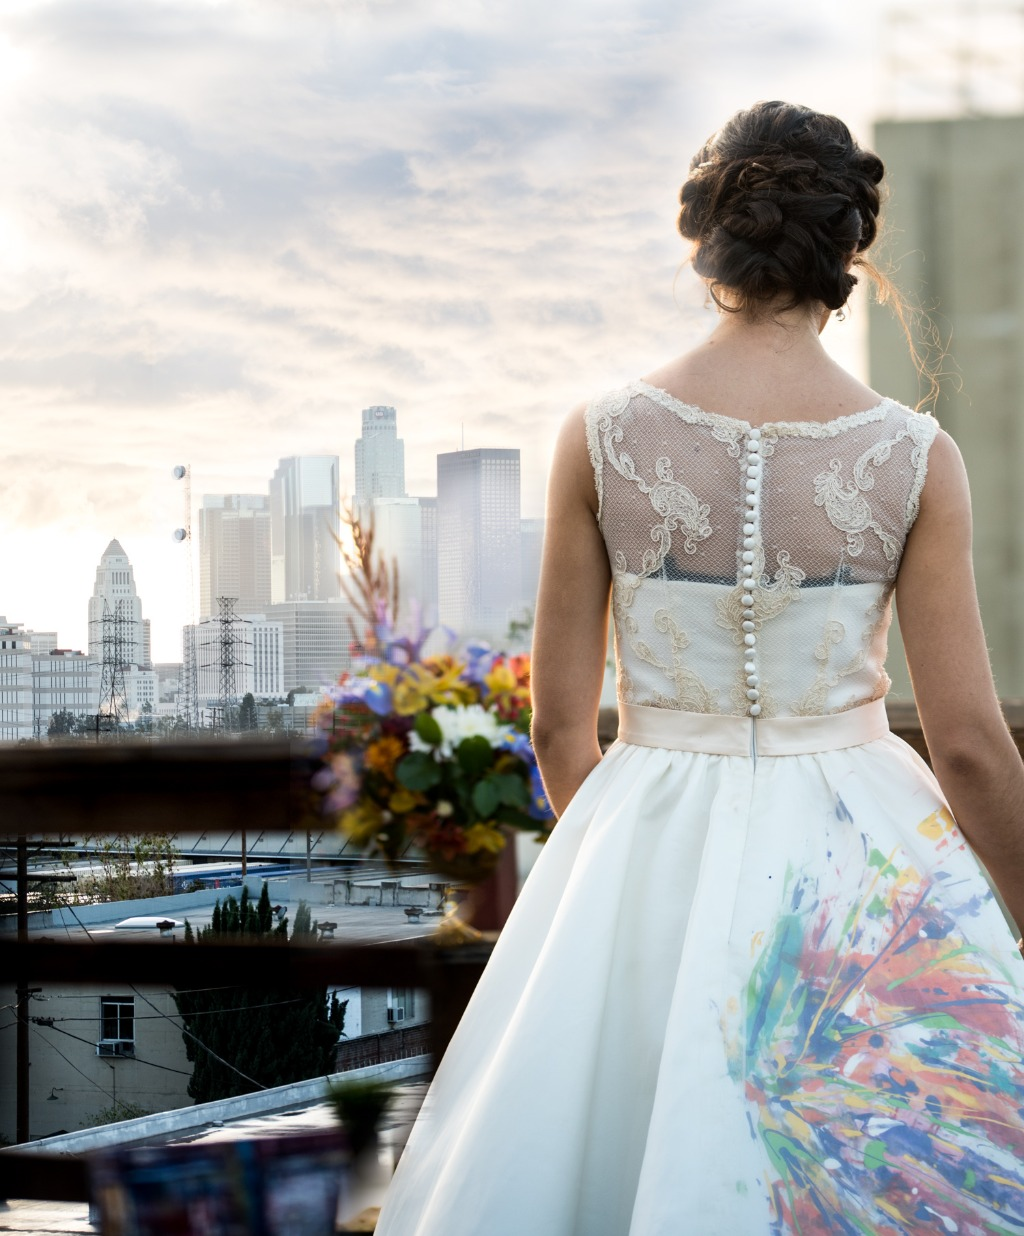 Our groom hand-painted his bride's tea-length dress, creating a unique, beautiful look for their artistic vow renewal.